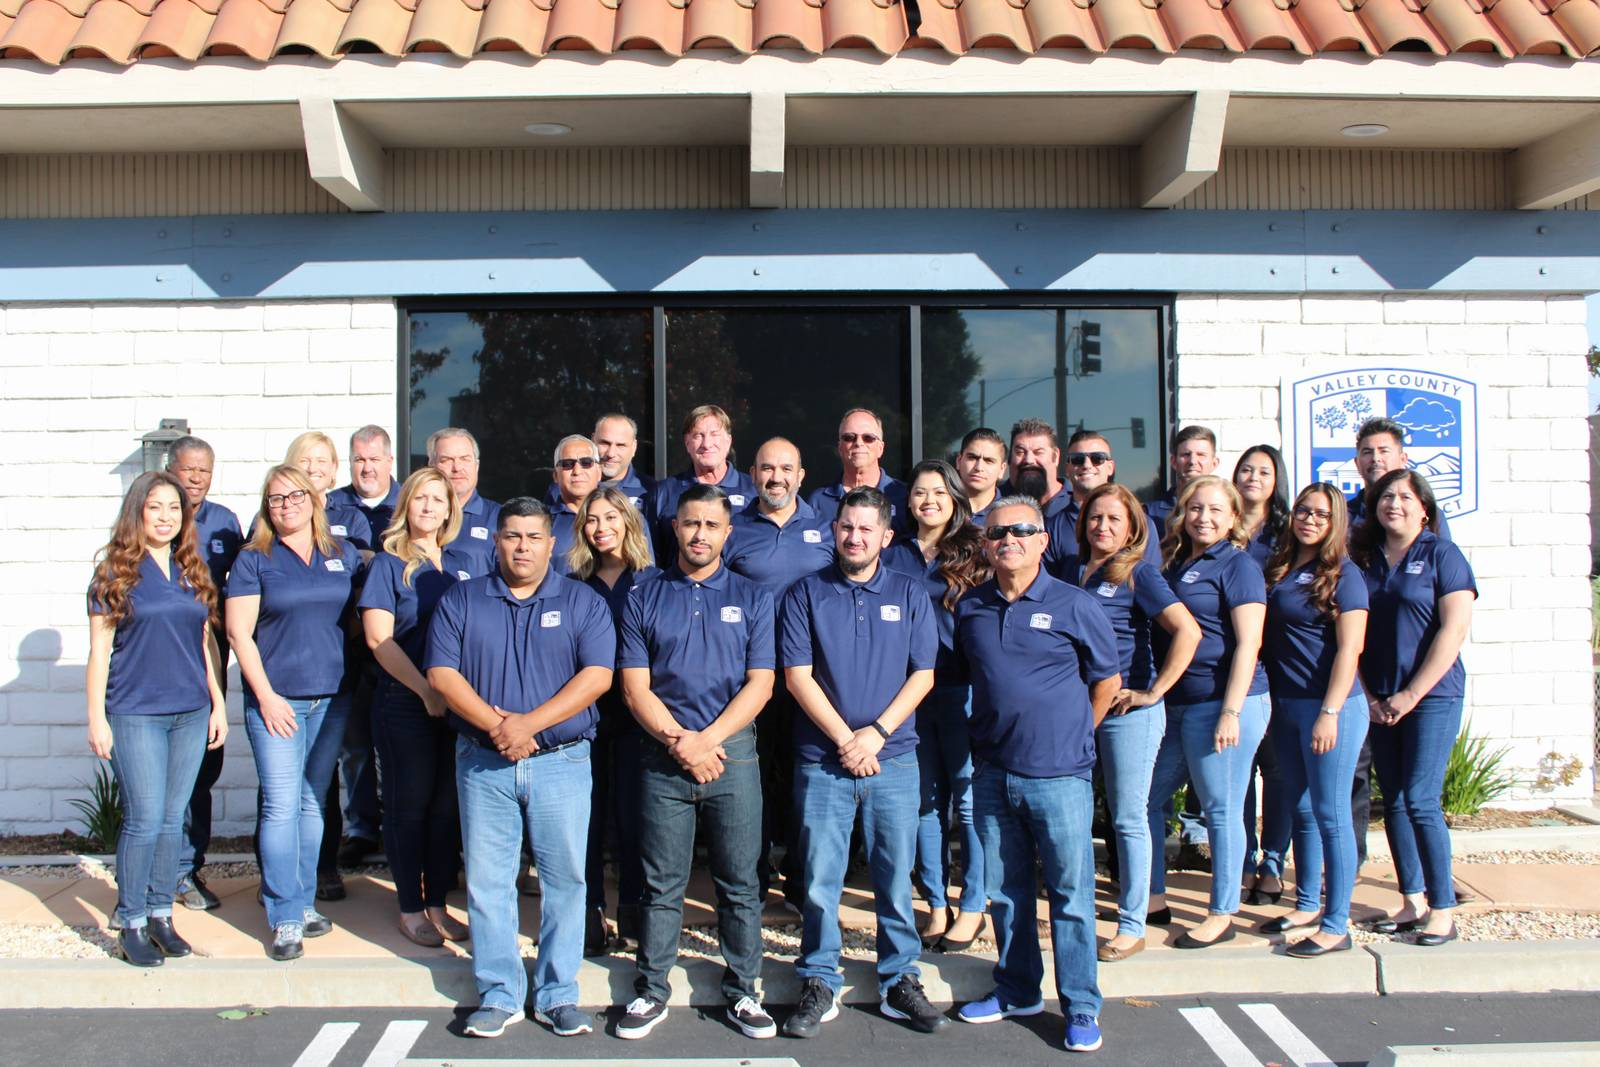 Valley County Water District Employees 2019